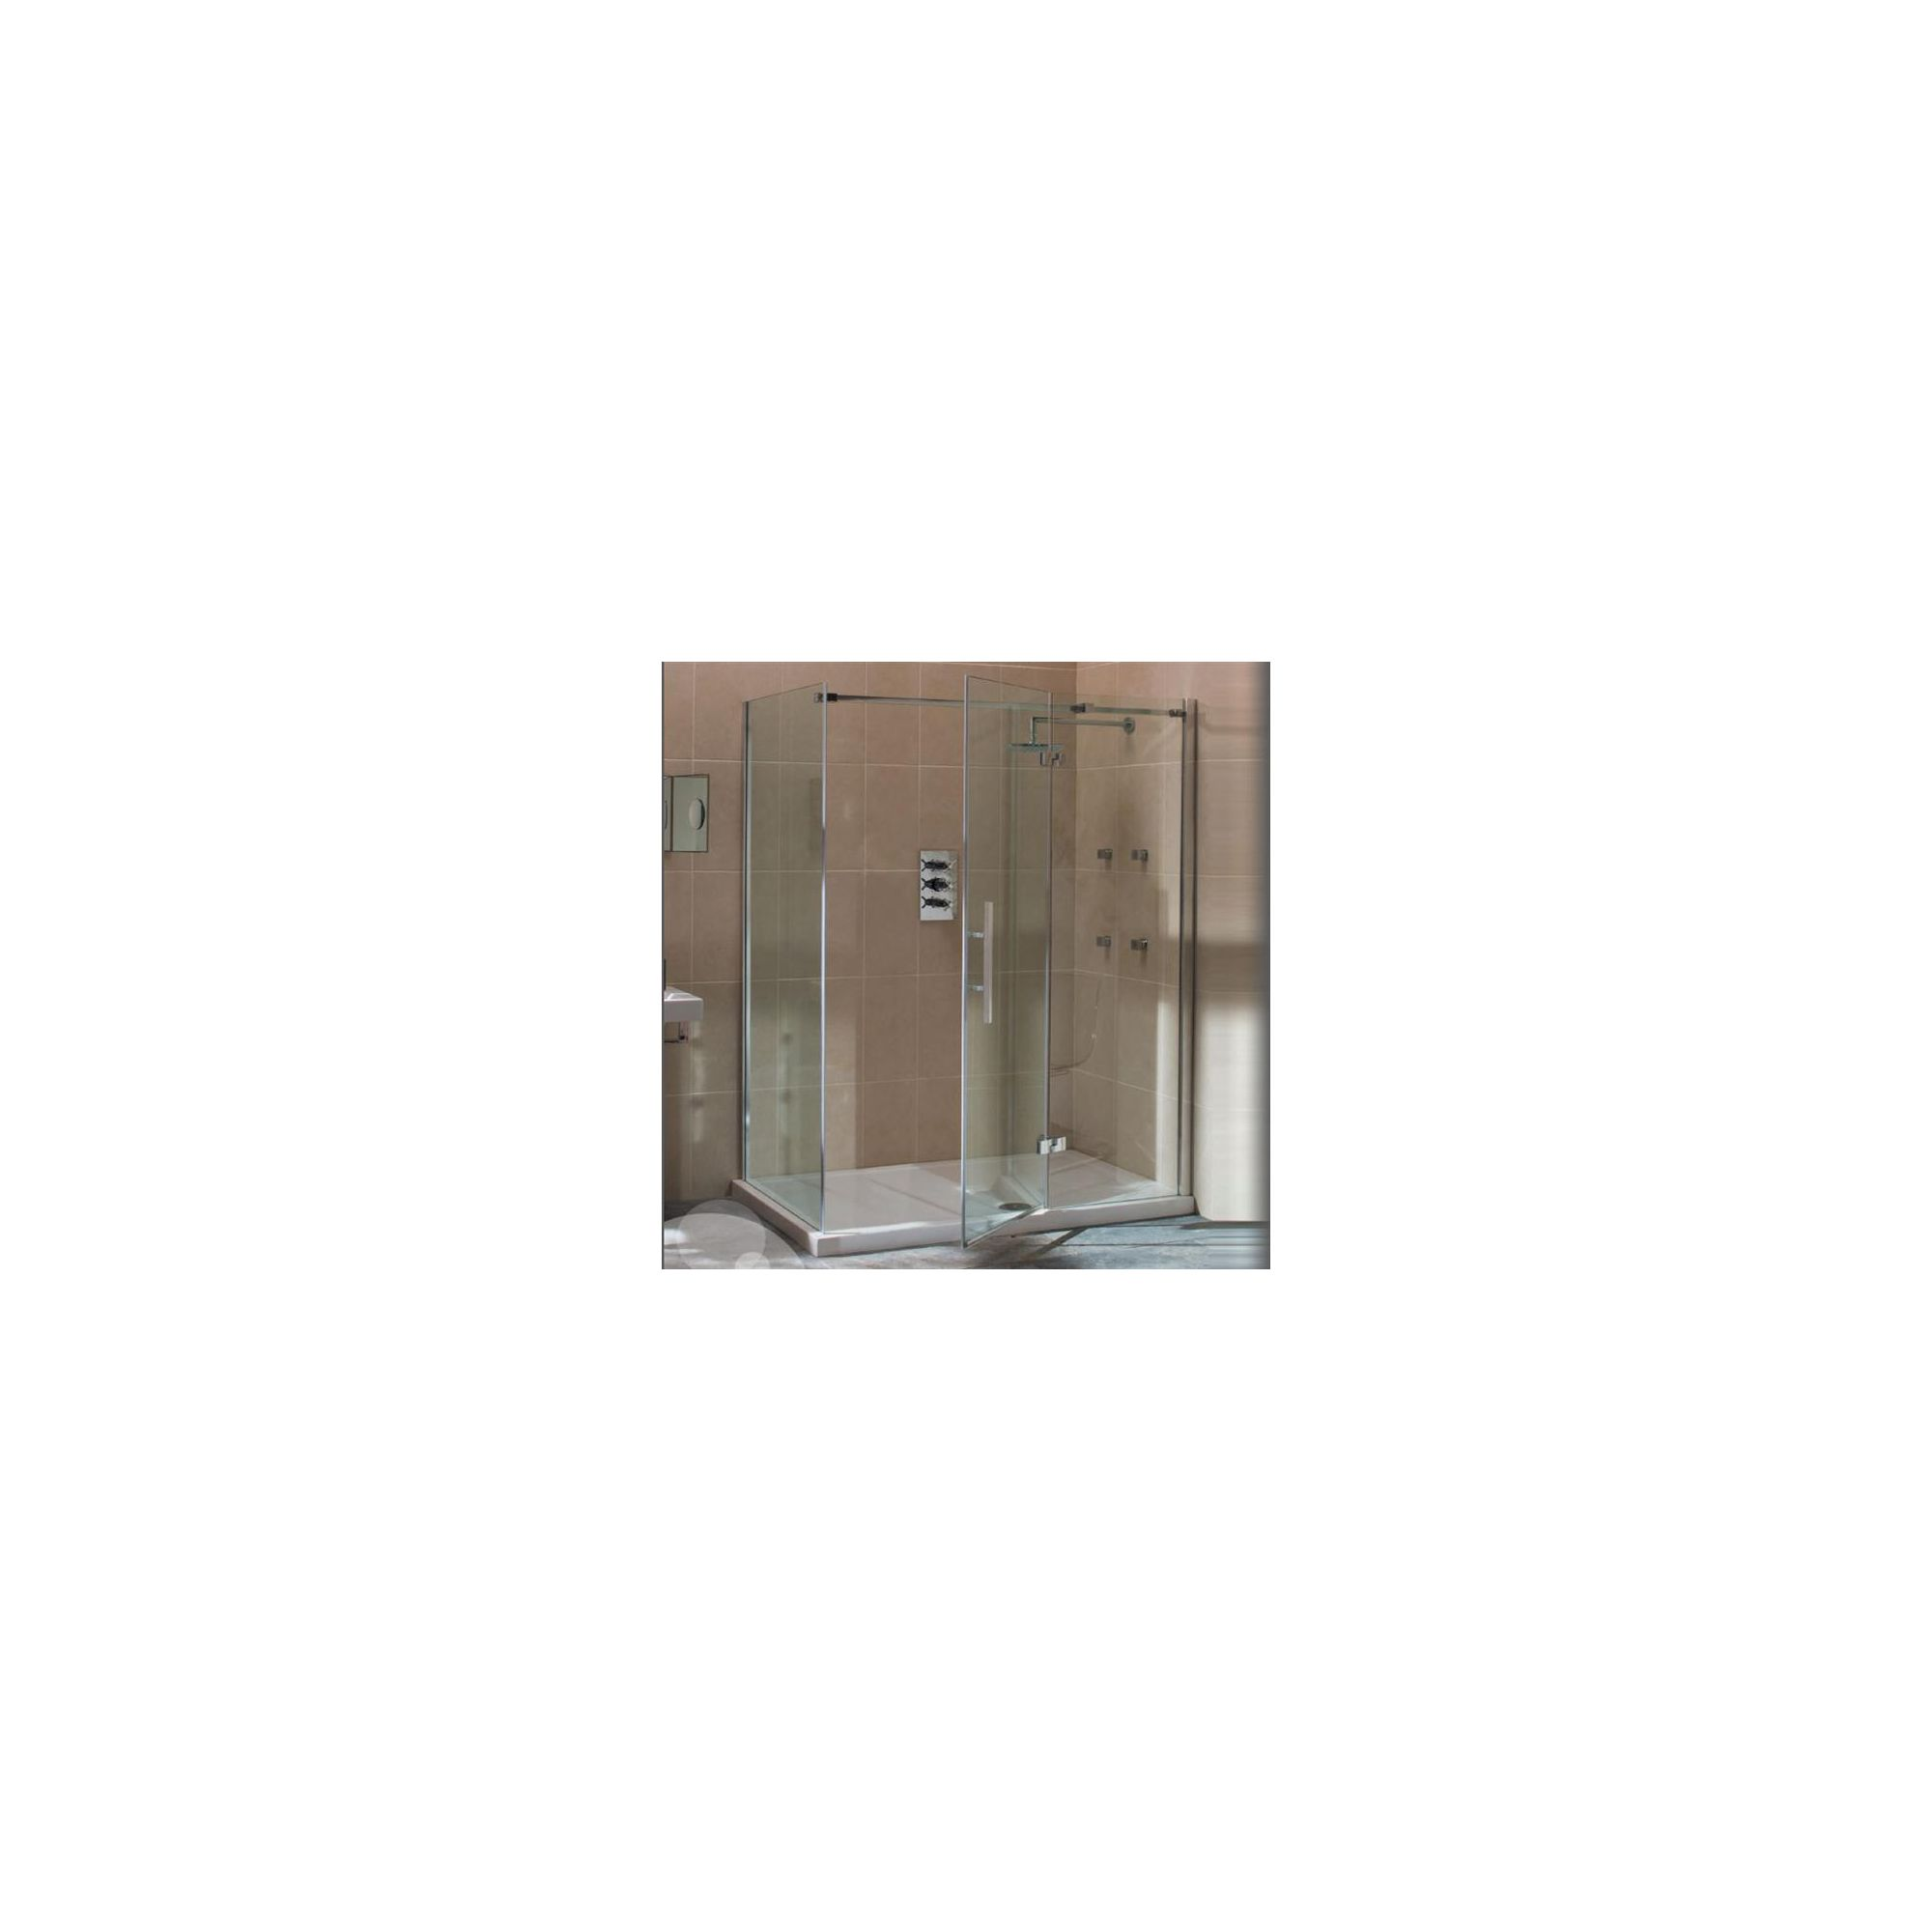 Merlyn Vivid Nine Frameless Hinged Shower Door and Inline Panel, 1600mm Wide, Right Handed, 8mm Glass at Tesco Direct